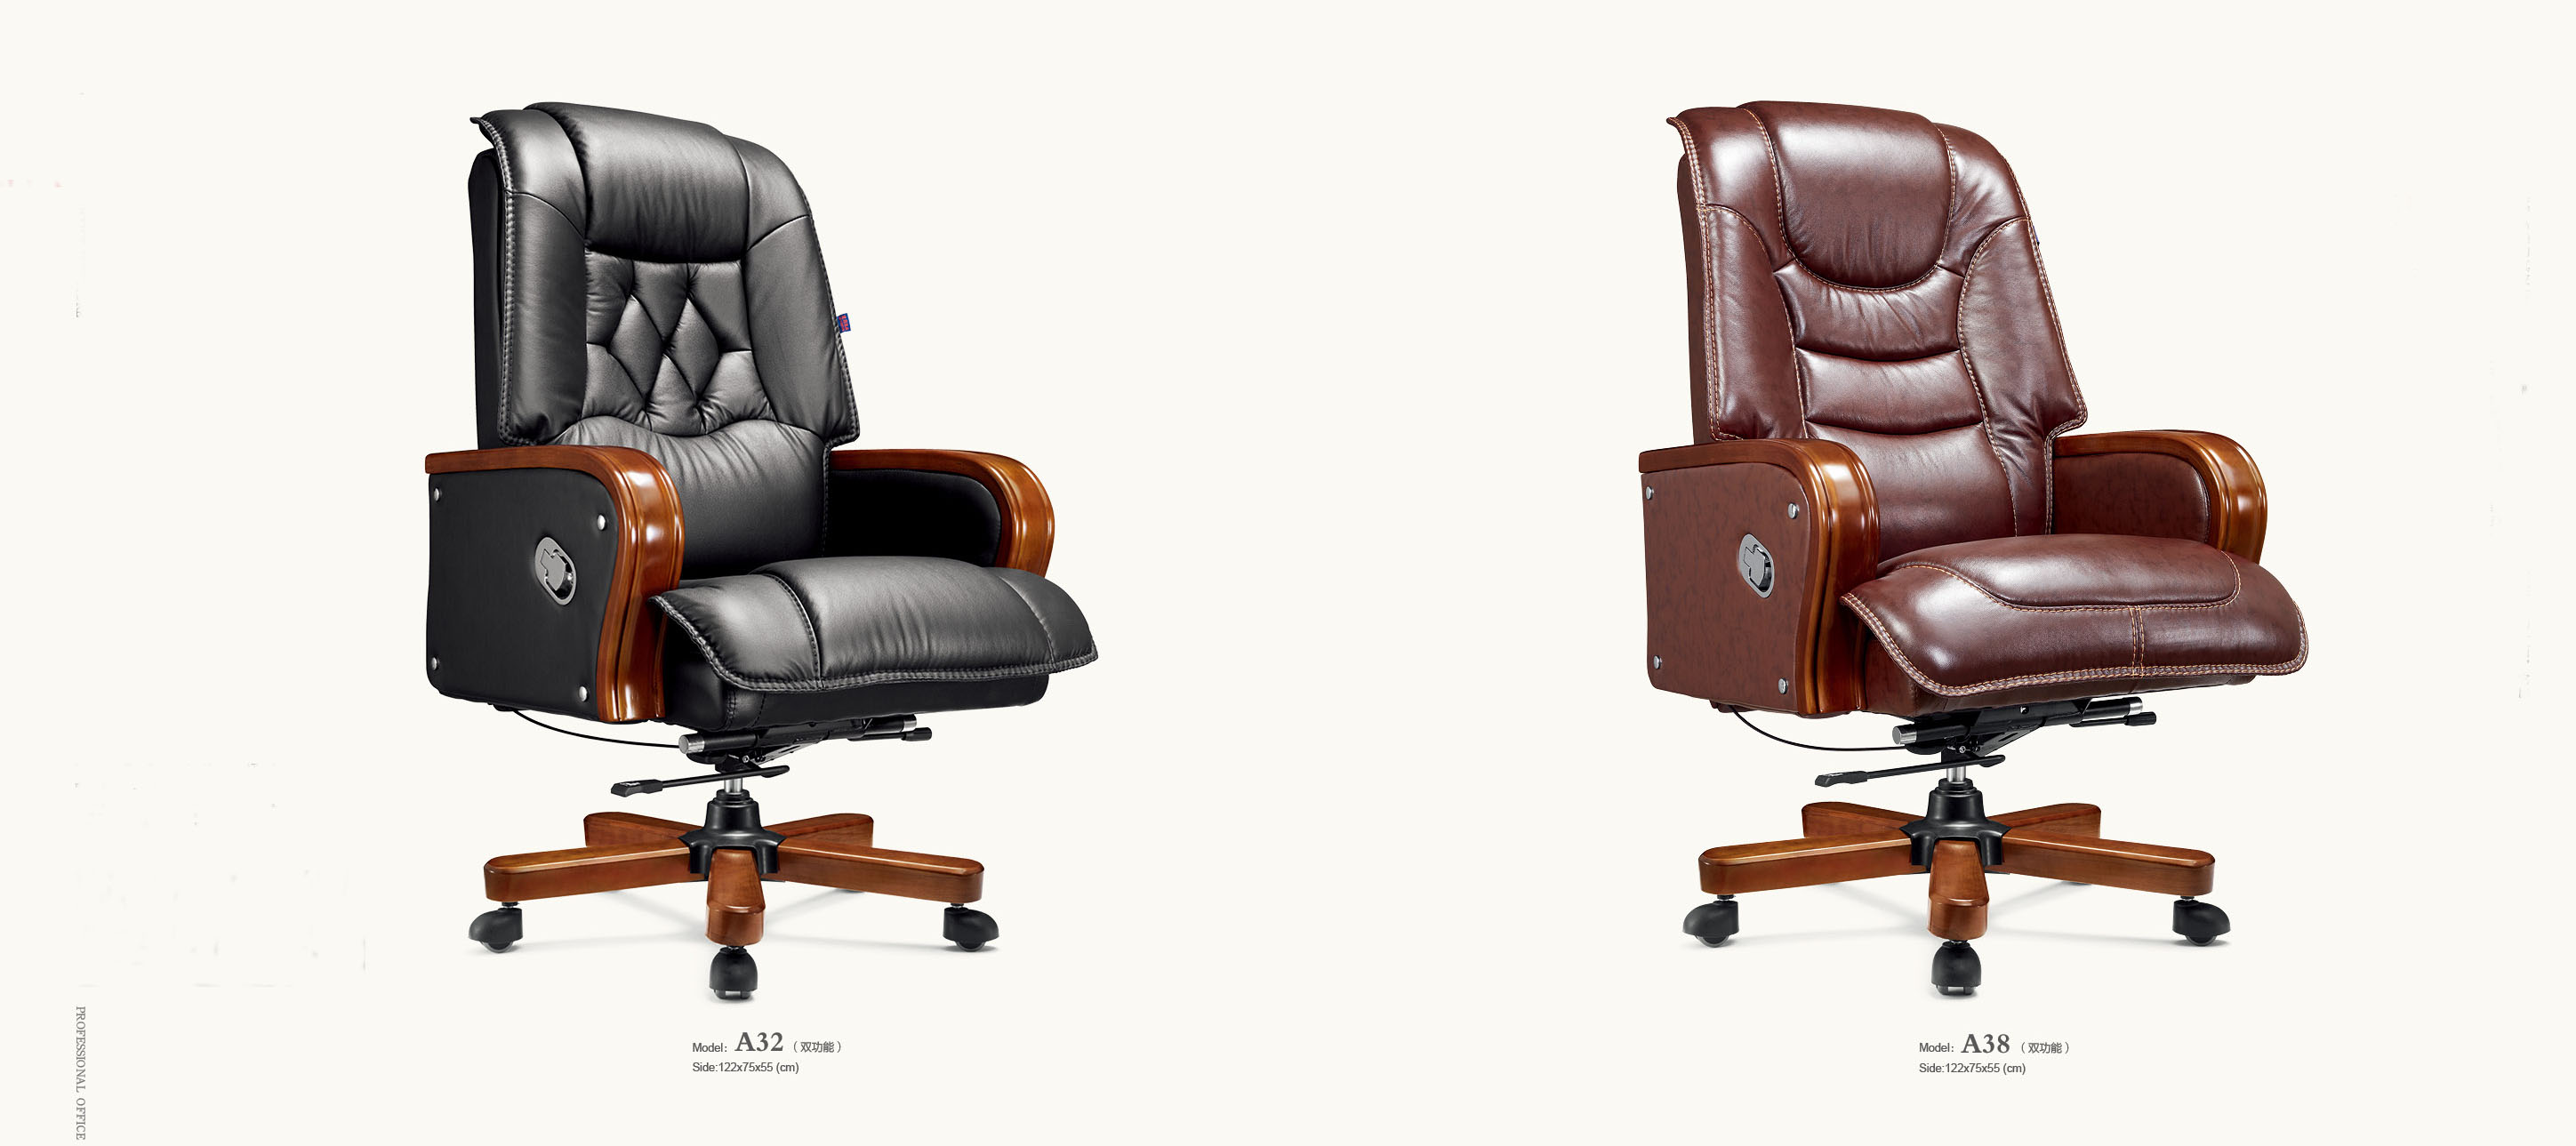 CEO Office Chair Swivel Chair Office Furniture with Armrest